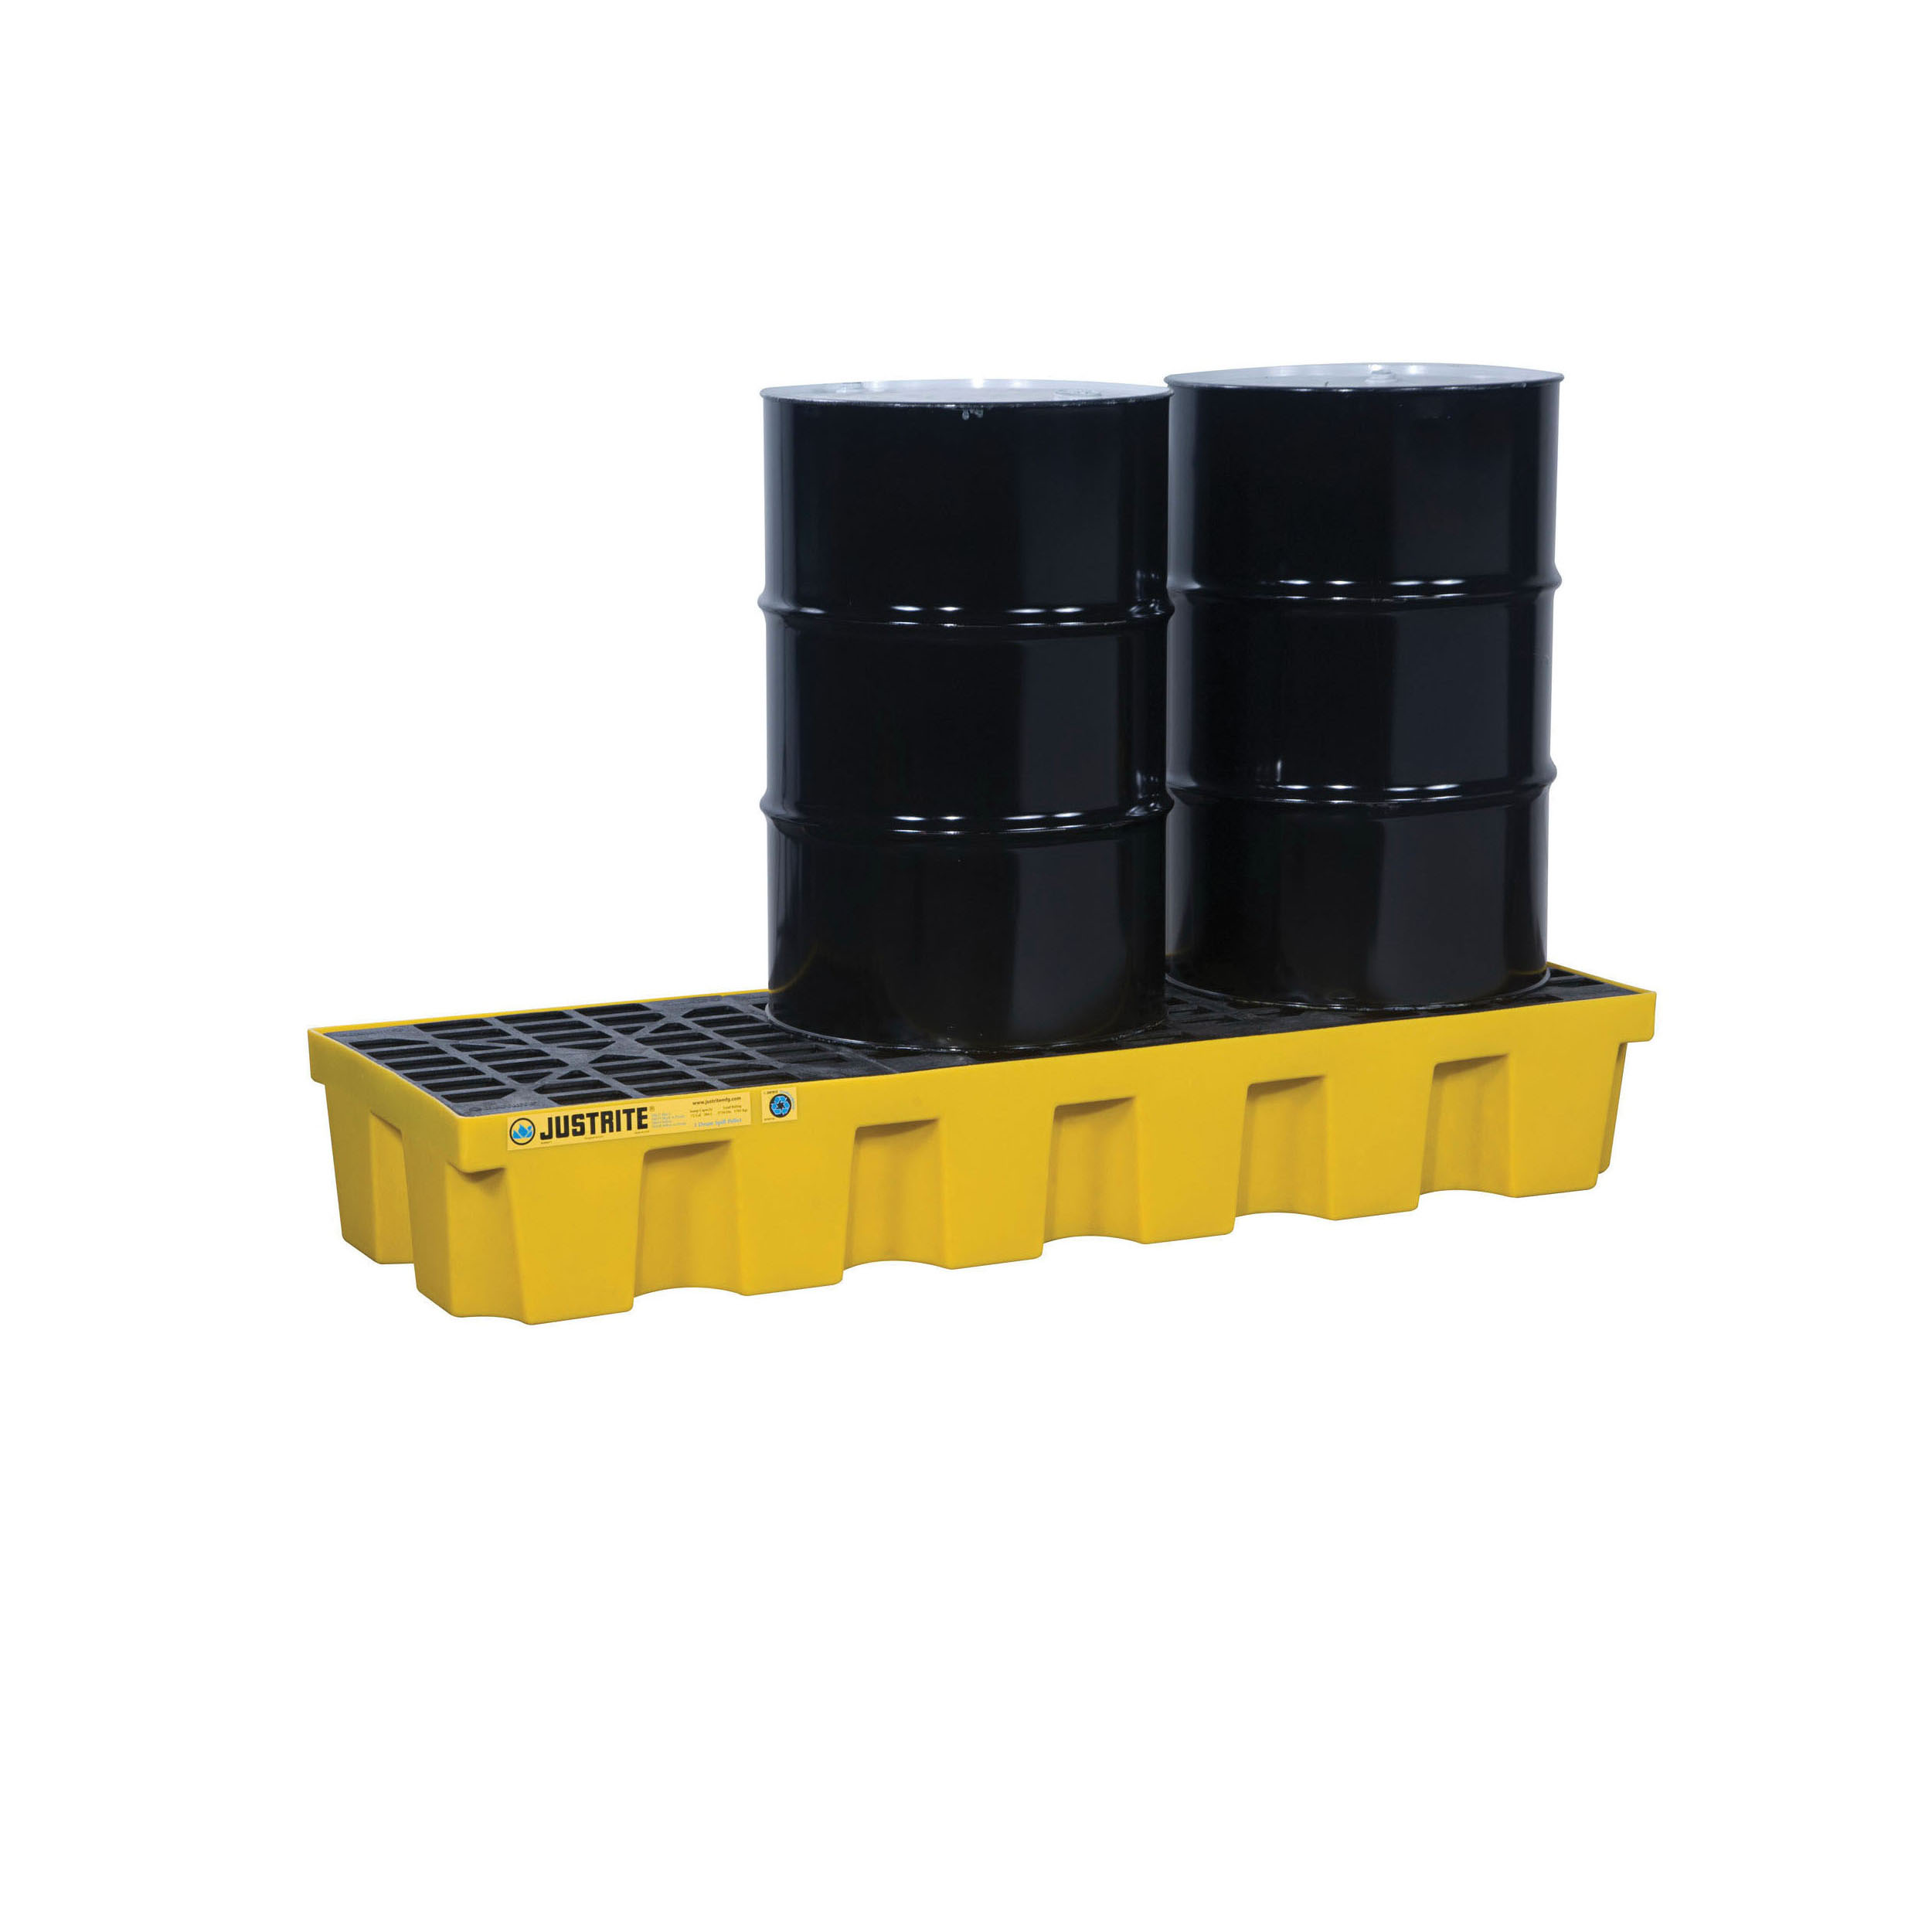 Justrite® 28626 EcoPolyBlend™ Spill Control Pallet, 3 Drums, 75 gal Spill, 3750 lb Load, 35% Recycled Polyethylene